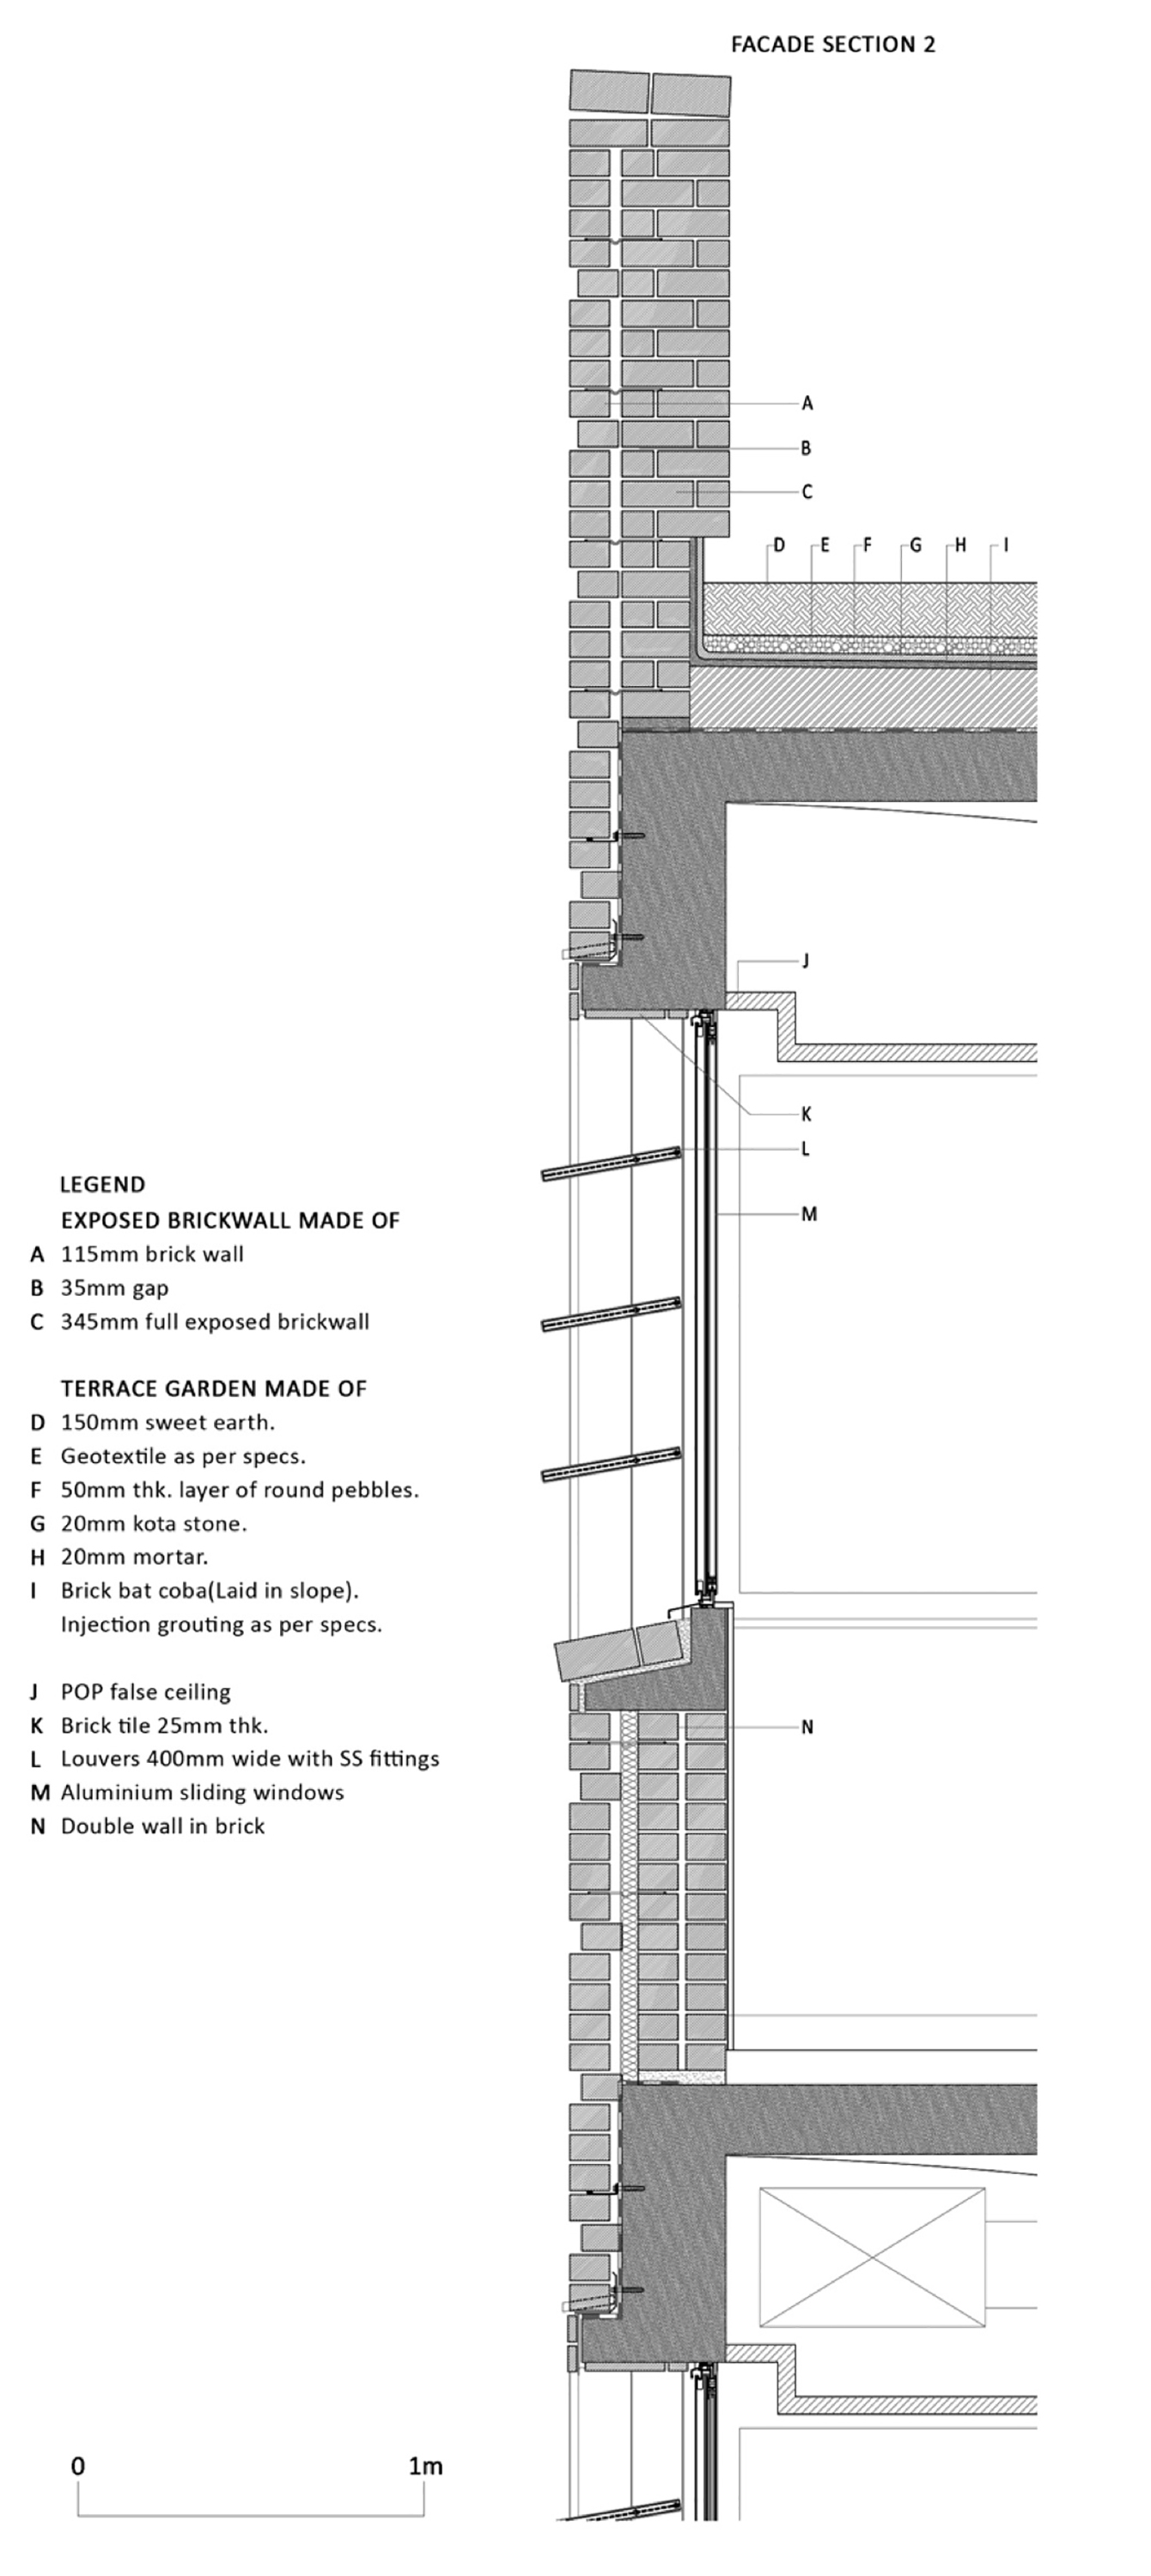 Terrace garden details - This Collection Includes Many Common Connection Details Between Two Or More Architectural Elements So Crucial In Ensuring A Building Envelope Is Wa